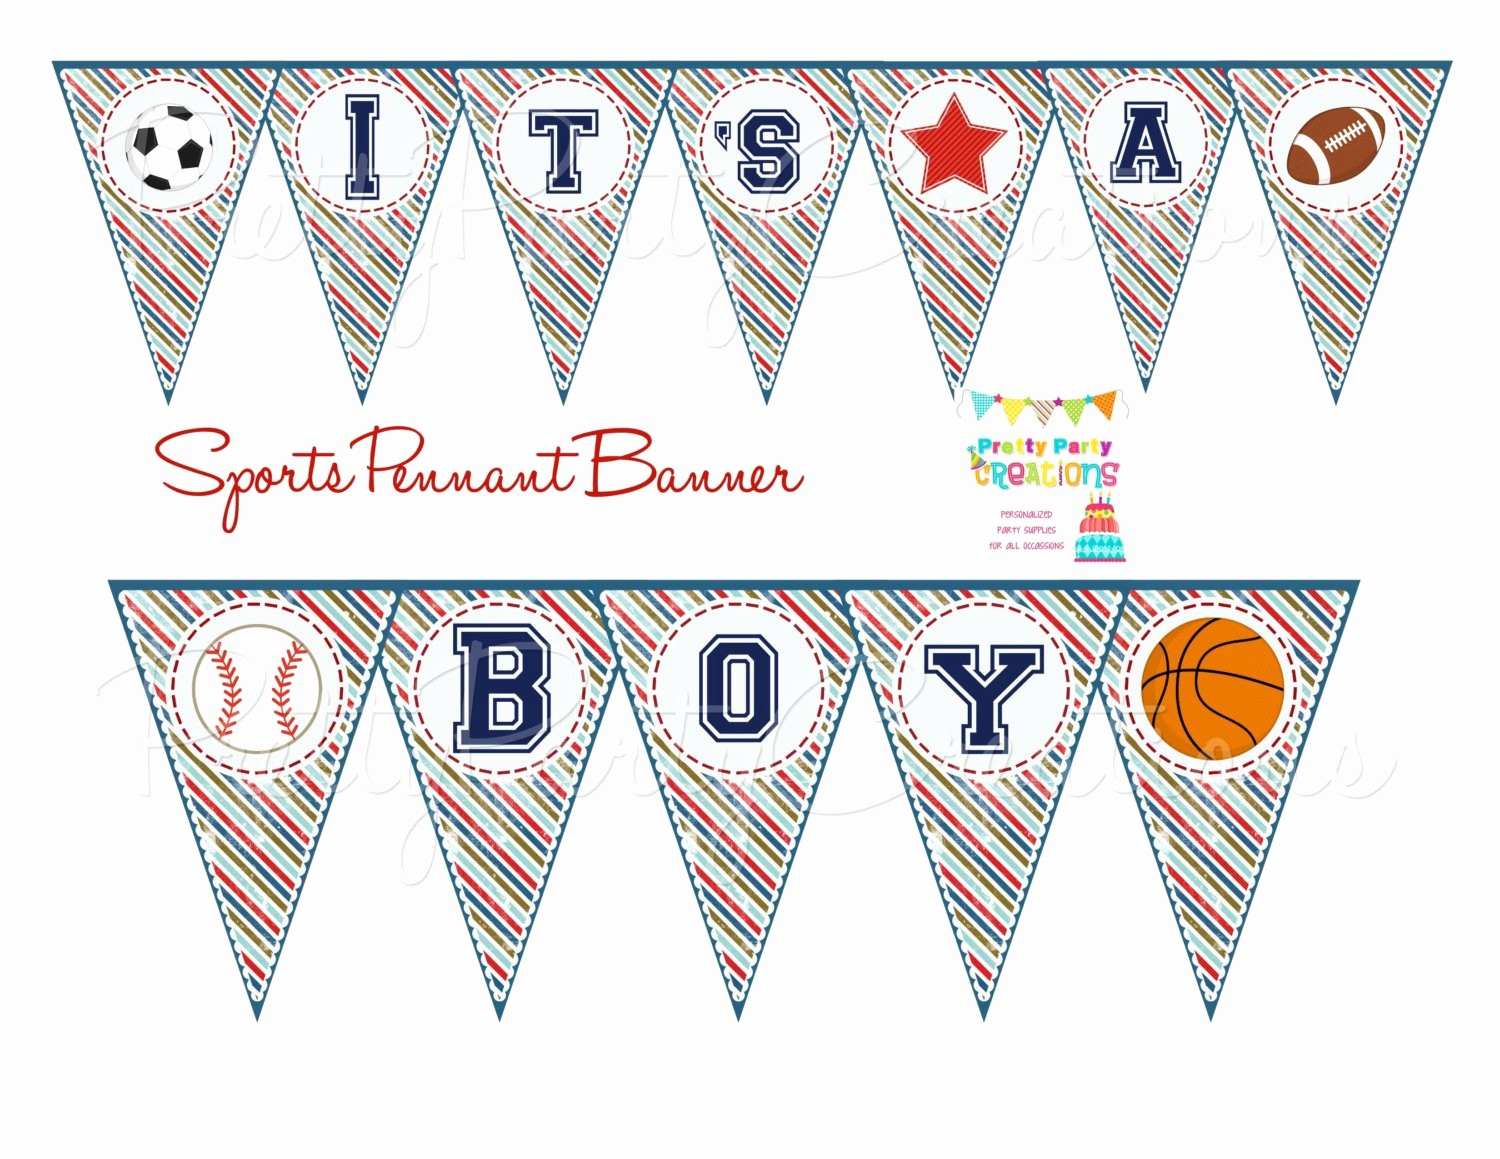 It's A Boy Banner Printable Elegant Sports Pennant Banner Baby Shower or Birthday You Print